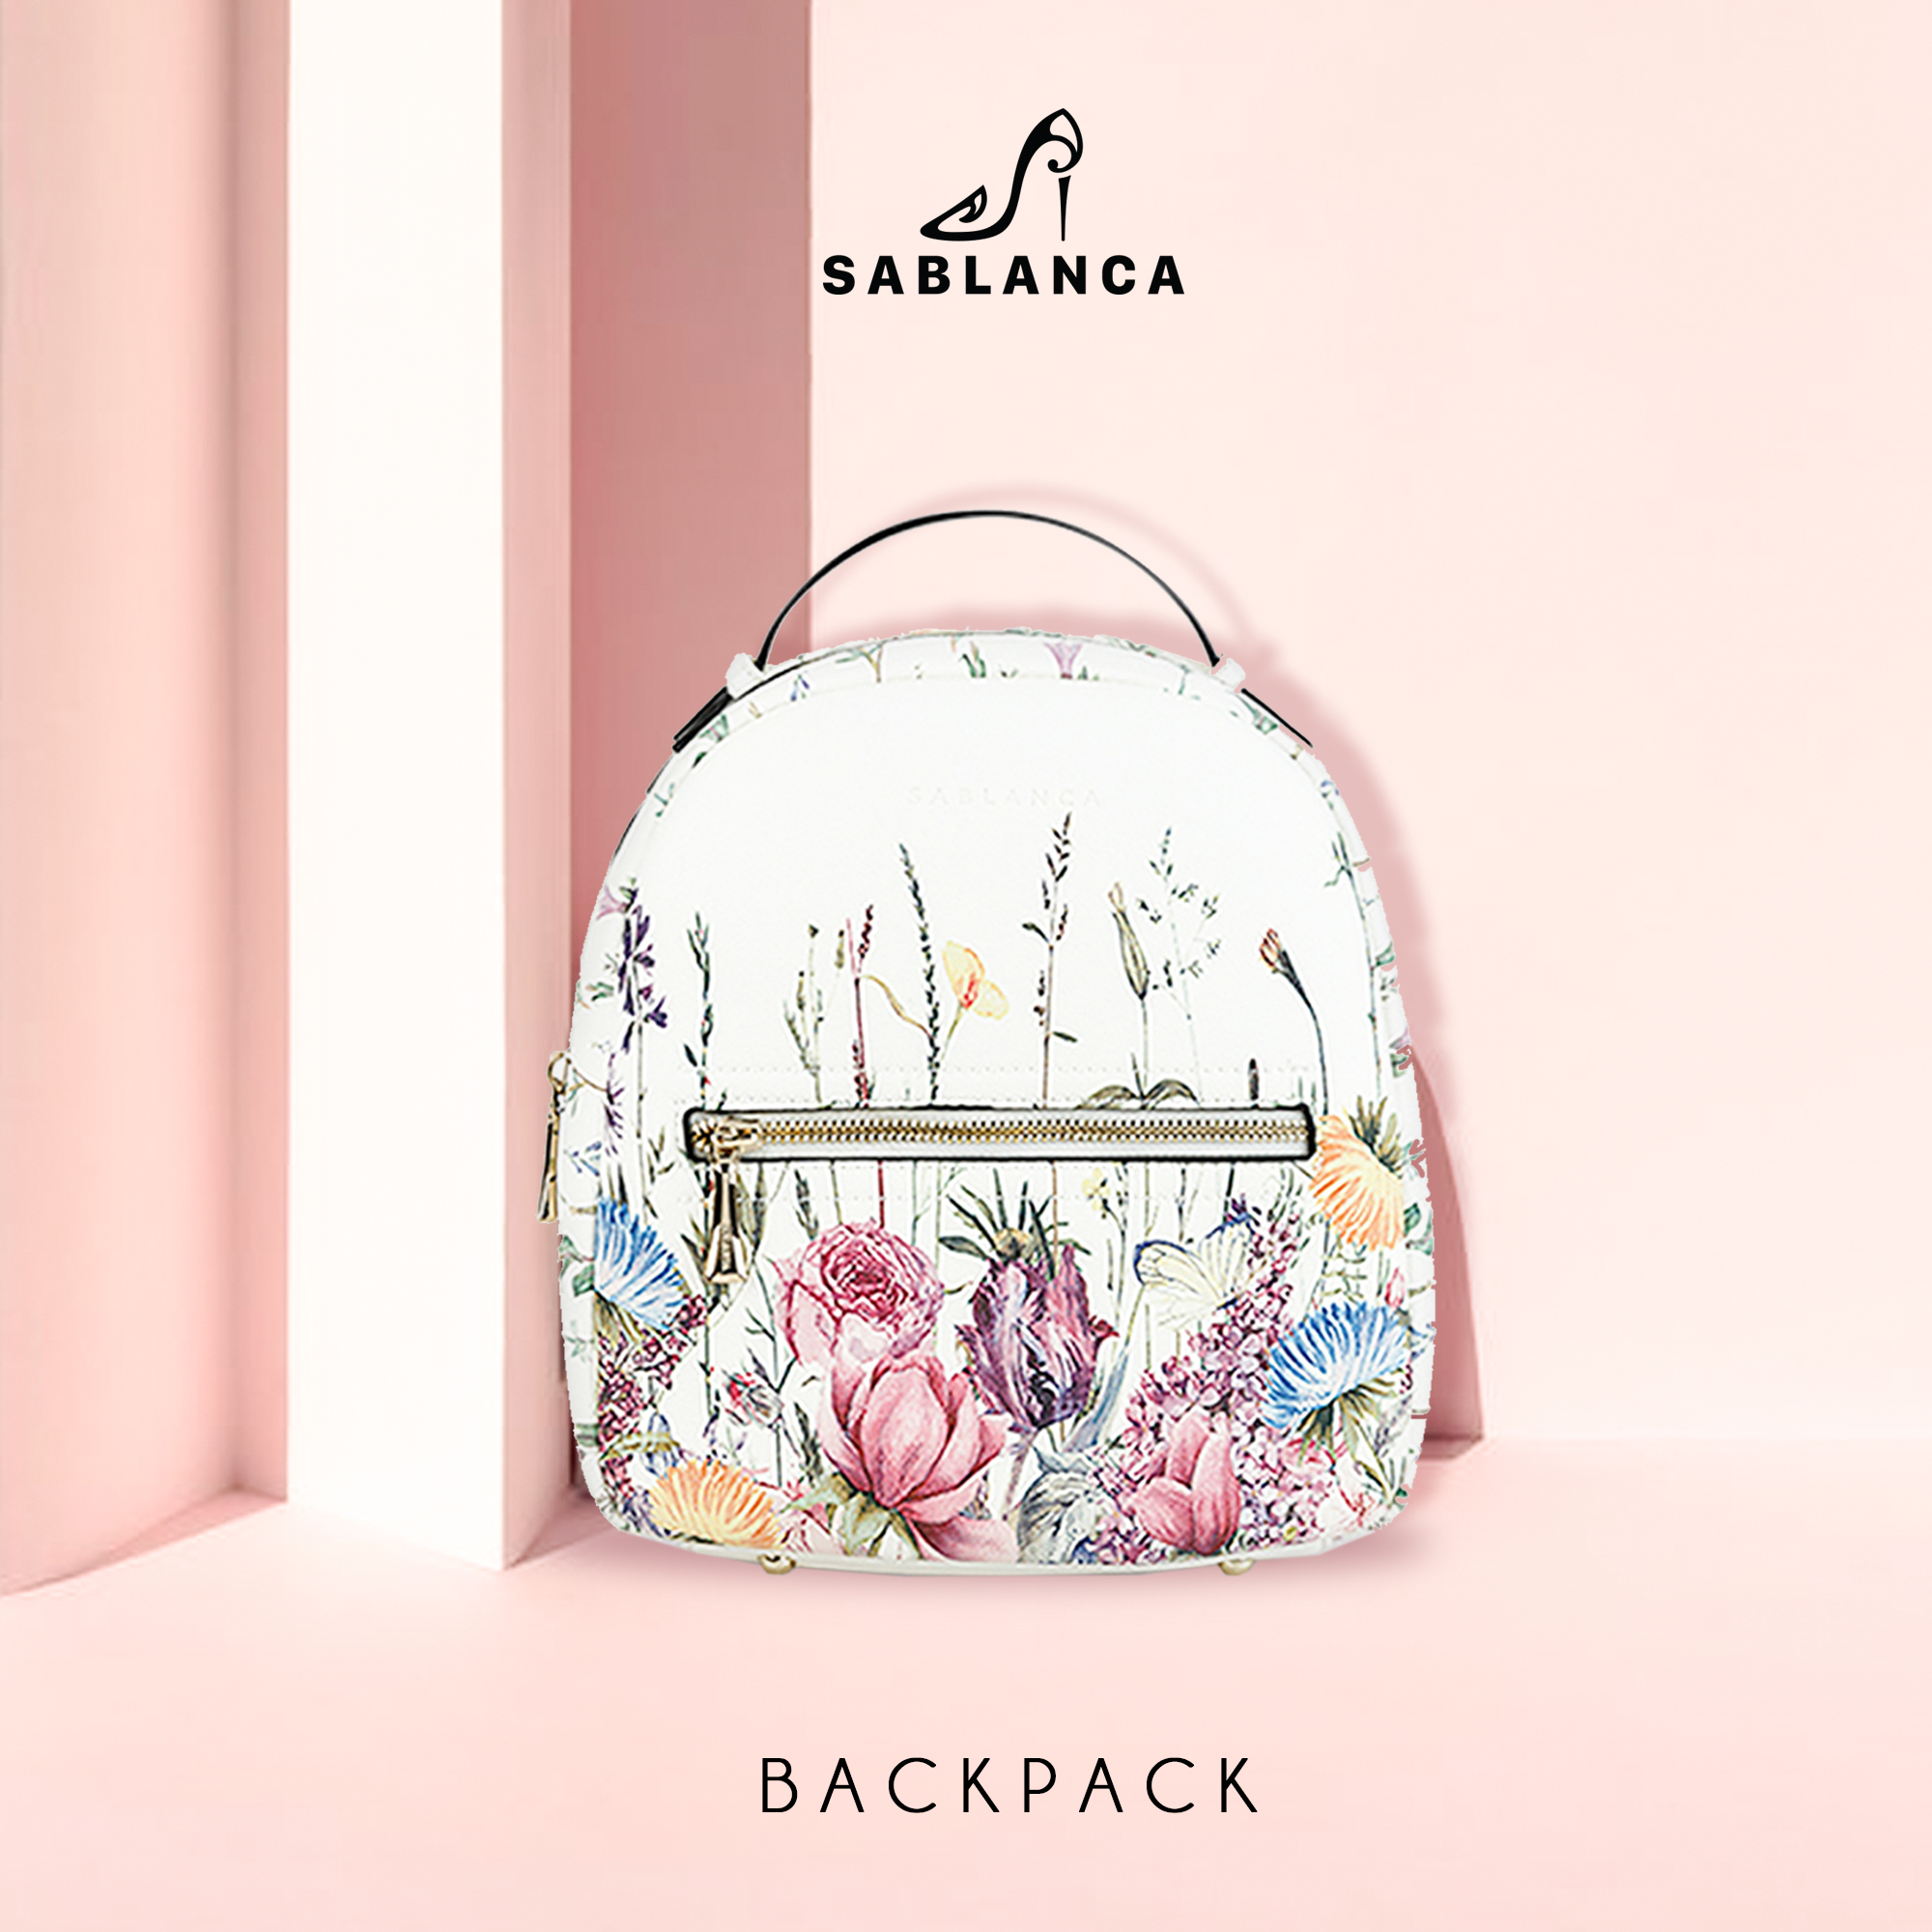 backpack-xinh-xan-sablanca